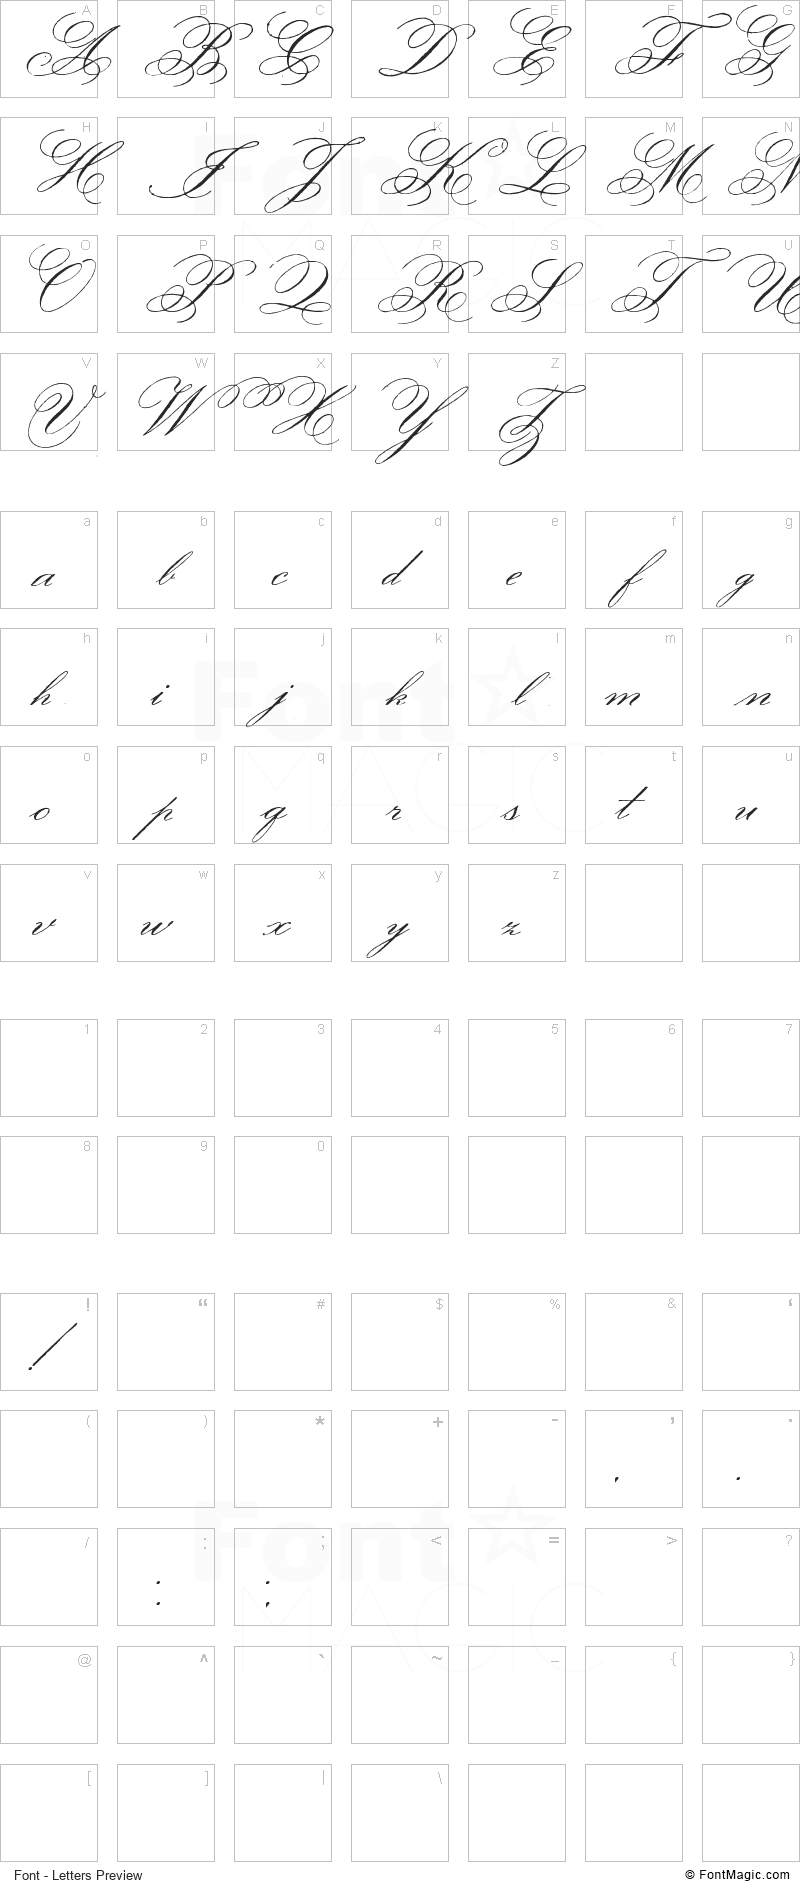 Face of Yesterday Font - All Latters Preview Chart